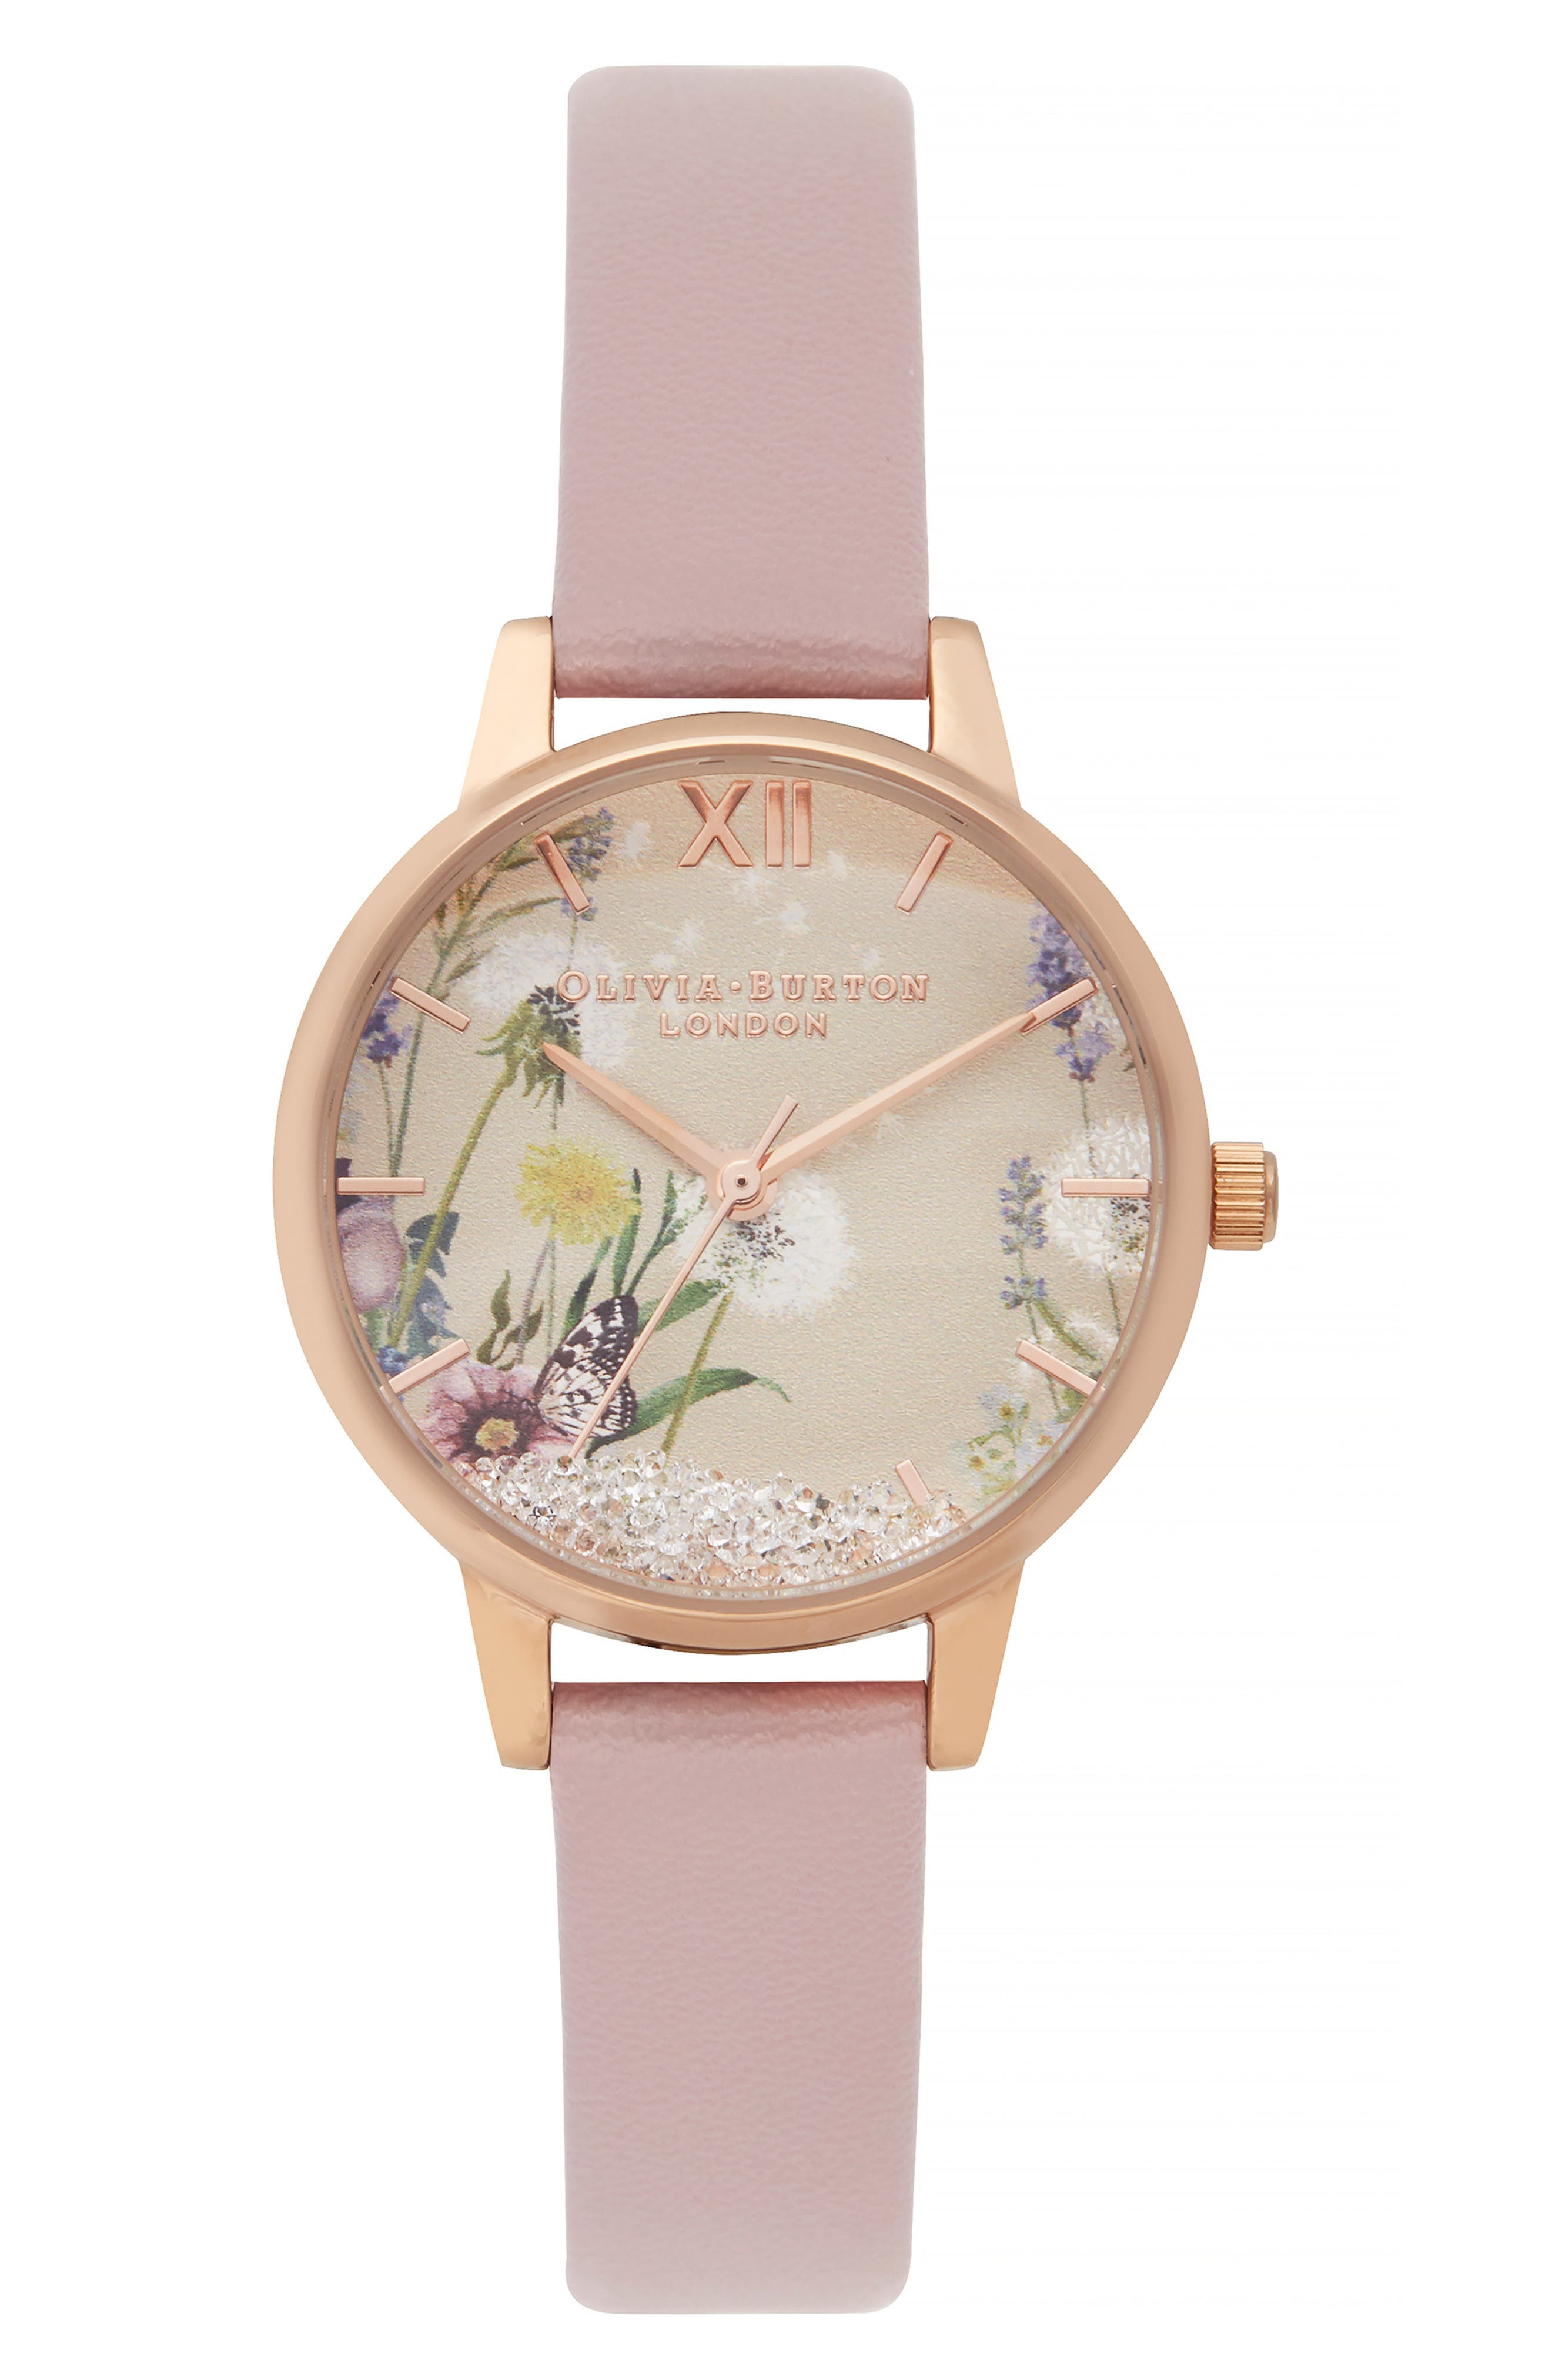 OLIVIA BURTON,                             Wishing Leather Strap Watch, 35mm,                             Main thumbnail 1, color,                             ROSE SAND/SILVER FLOR/ROSEGOLD